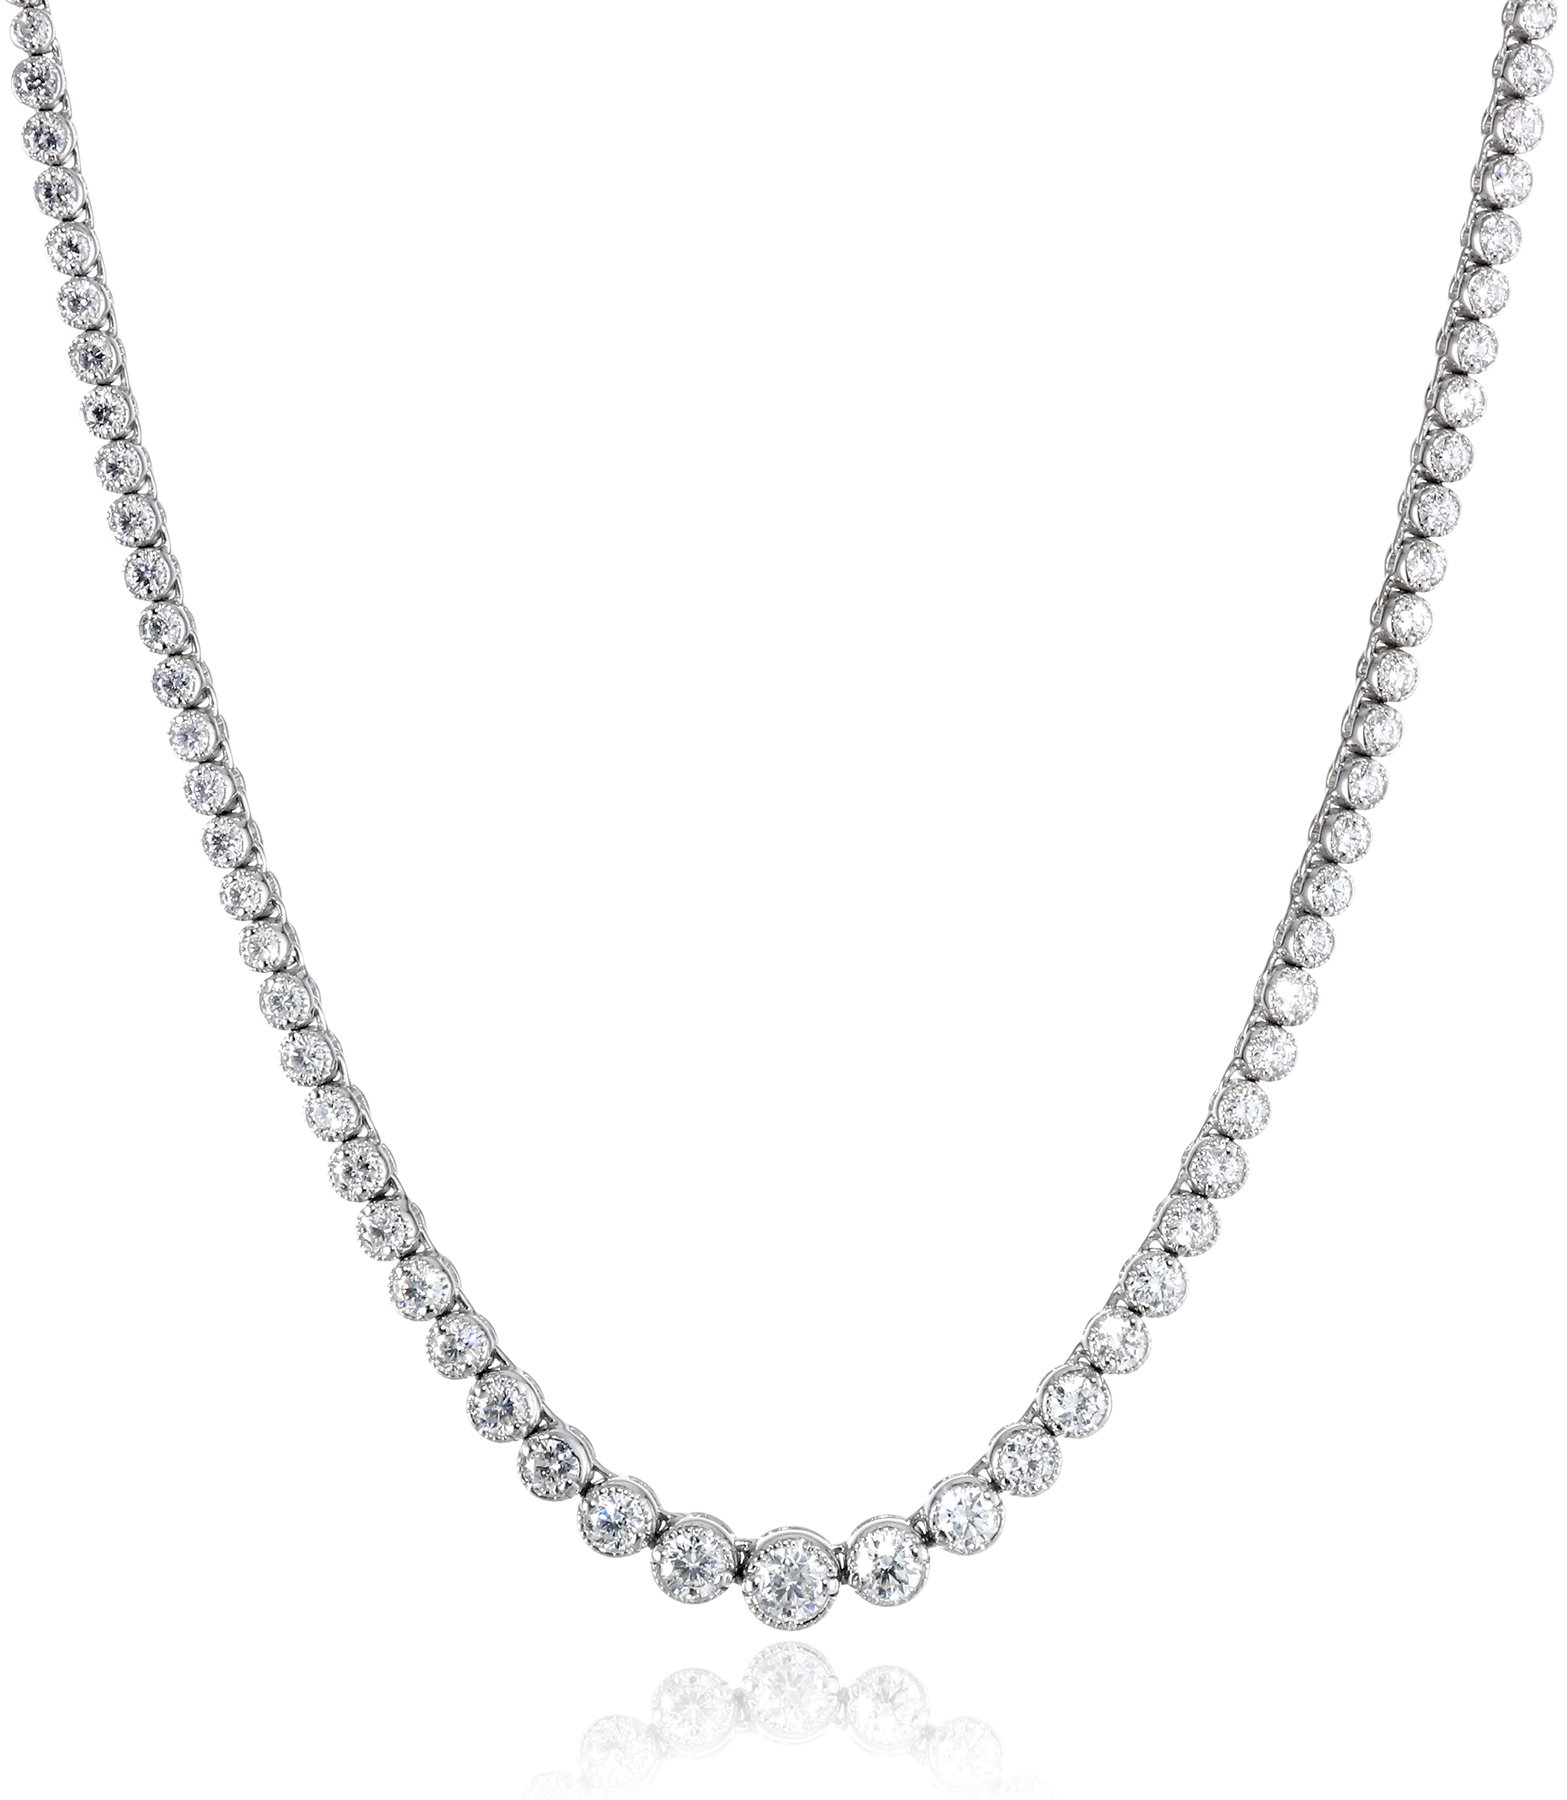 14k White Gold Milgrain Diamond Tennis Necklace, 17'' (5.5cttw, H-I Color, I1 Clarity)